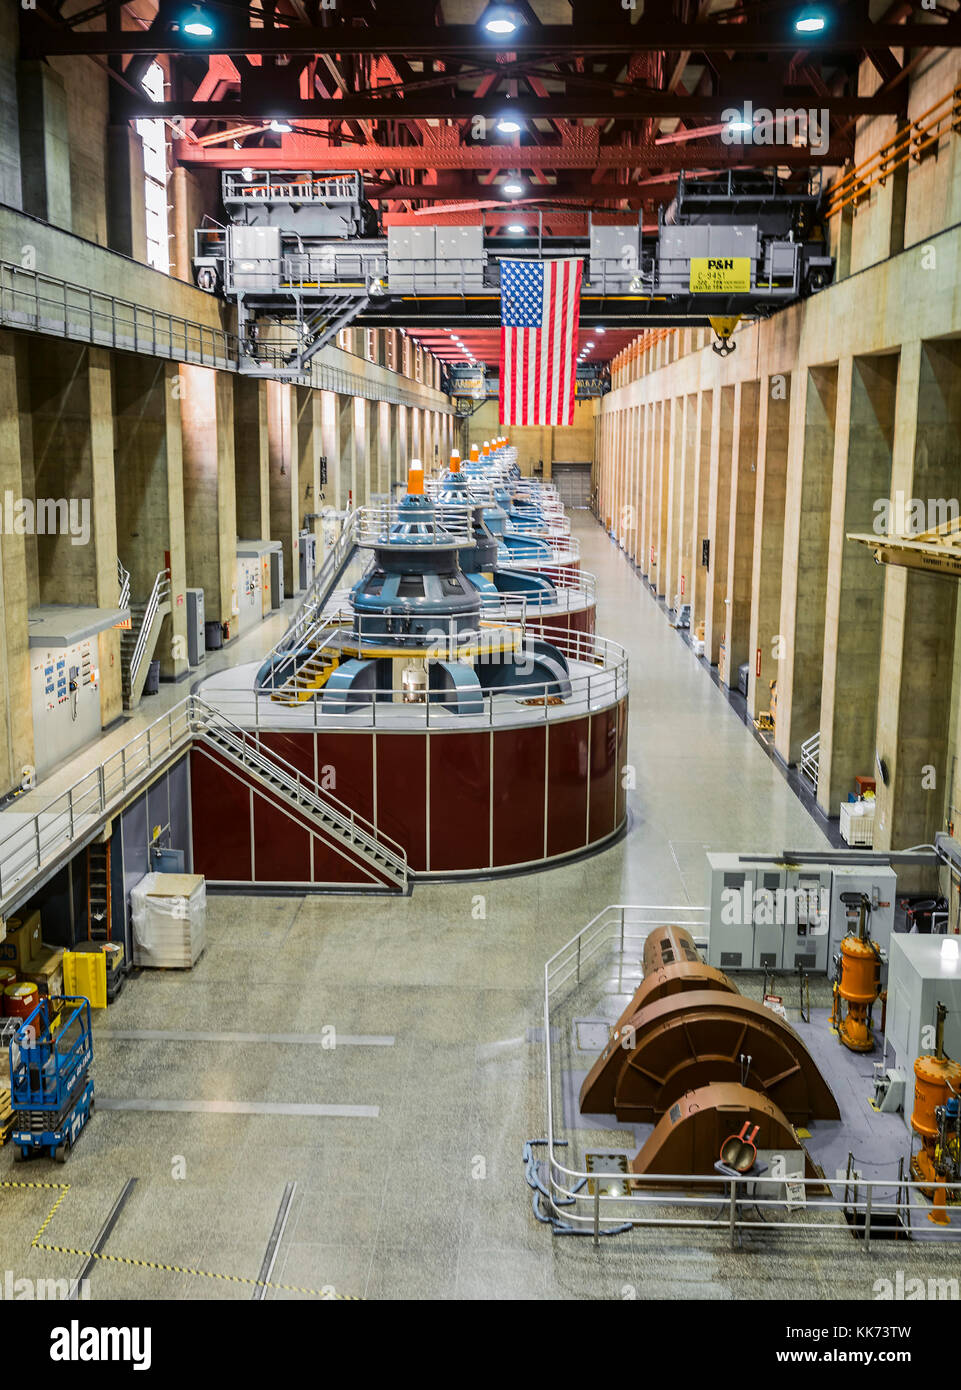 Underground Dam Stock Photos Images Alamy Hoover Power Plant Diagram Turbines With America Flag August 10th 2017